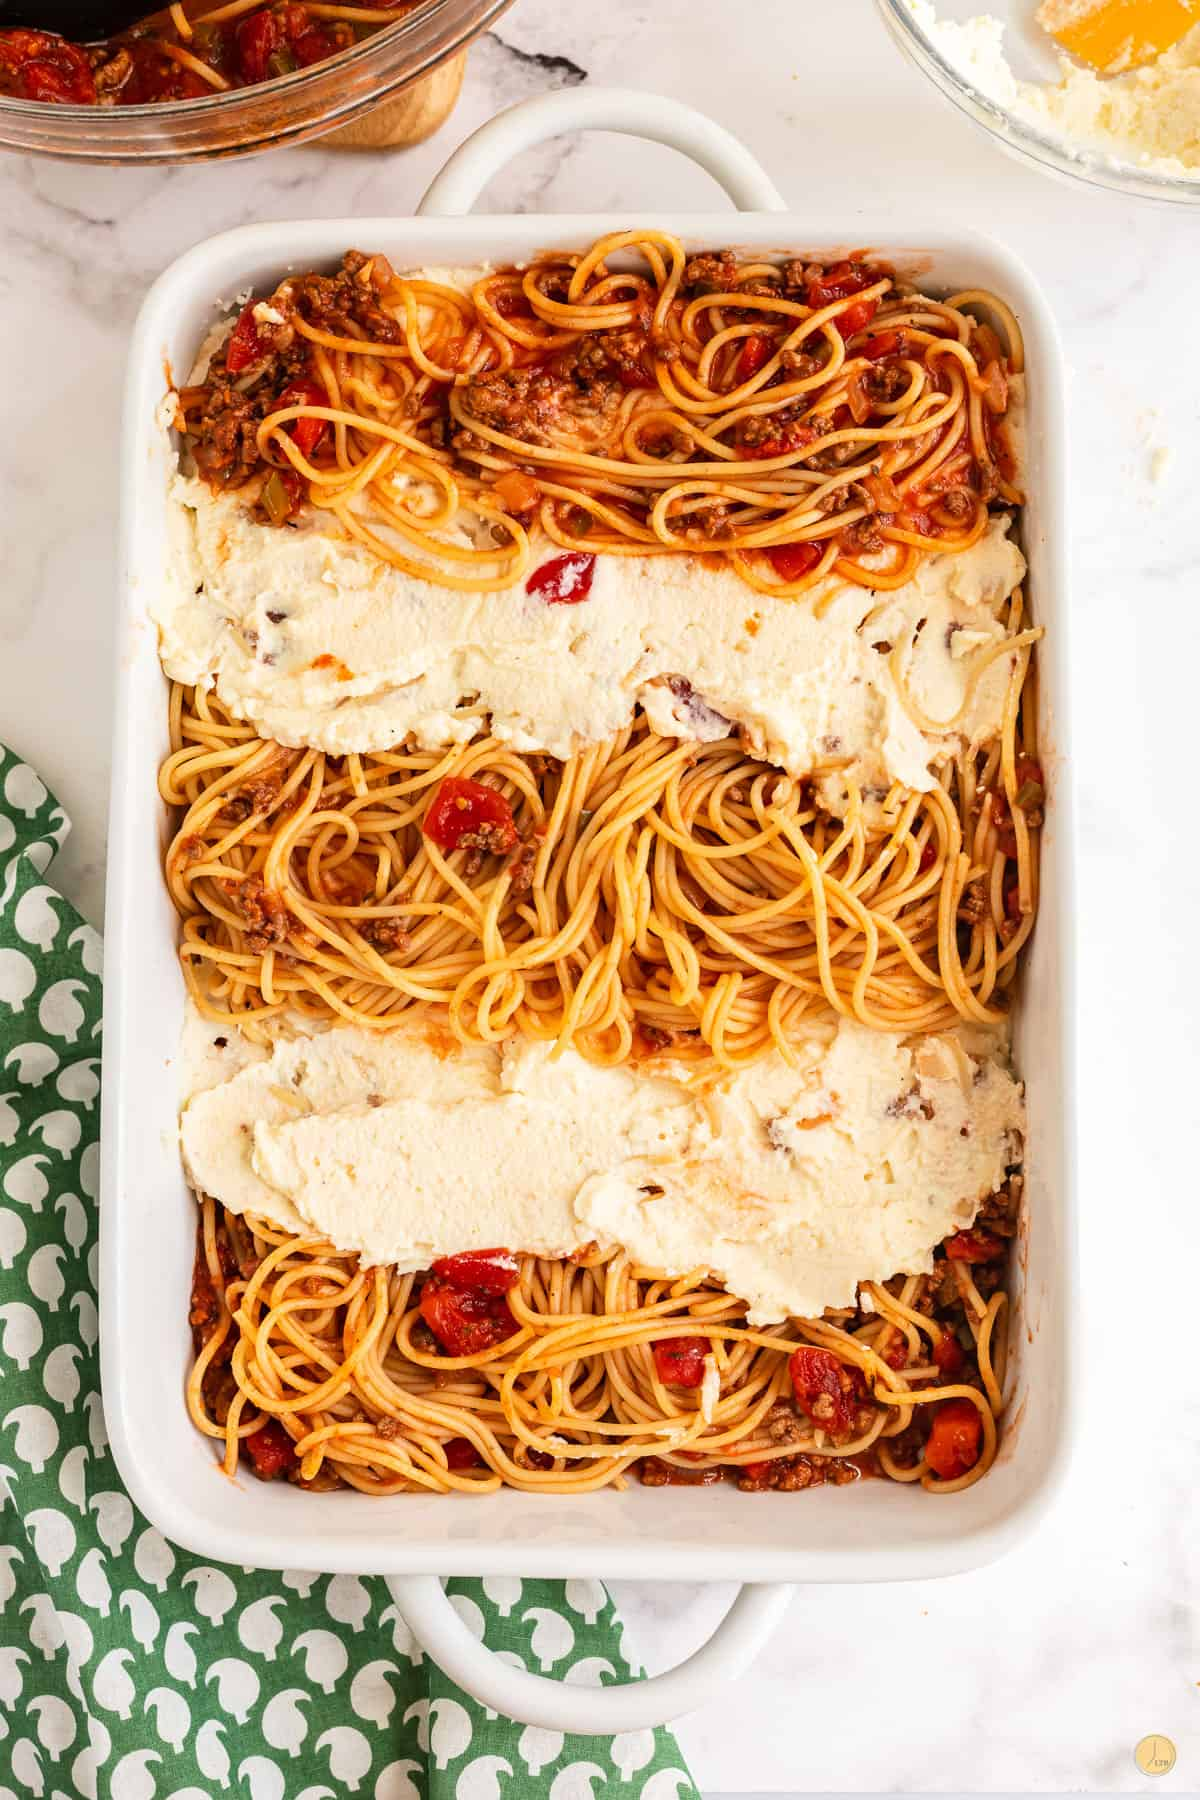 casserole dish with layers of pasta and cheese